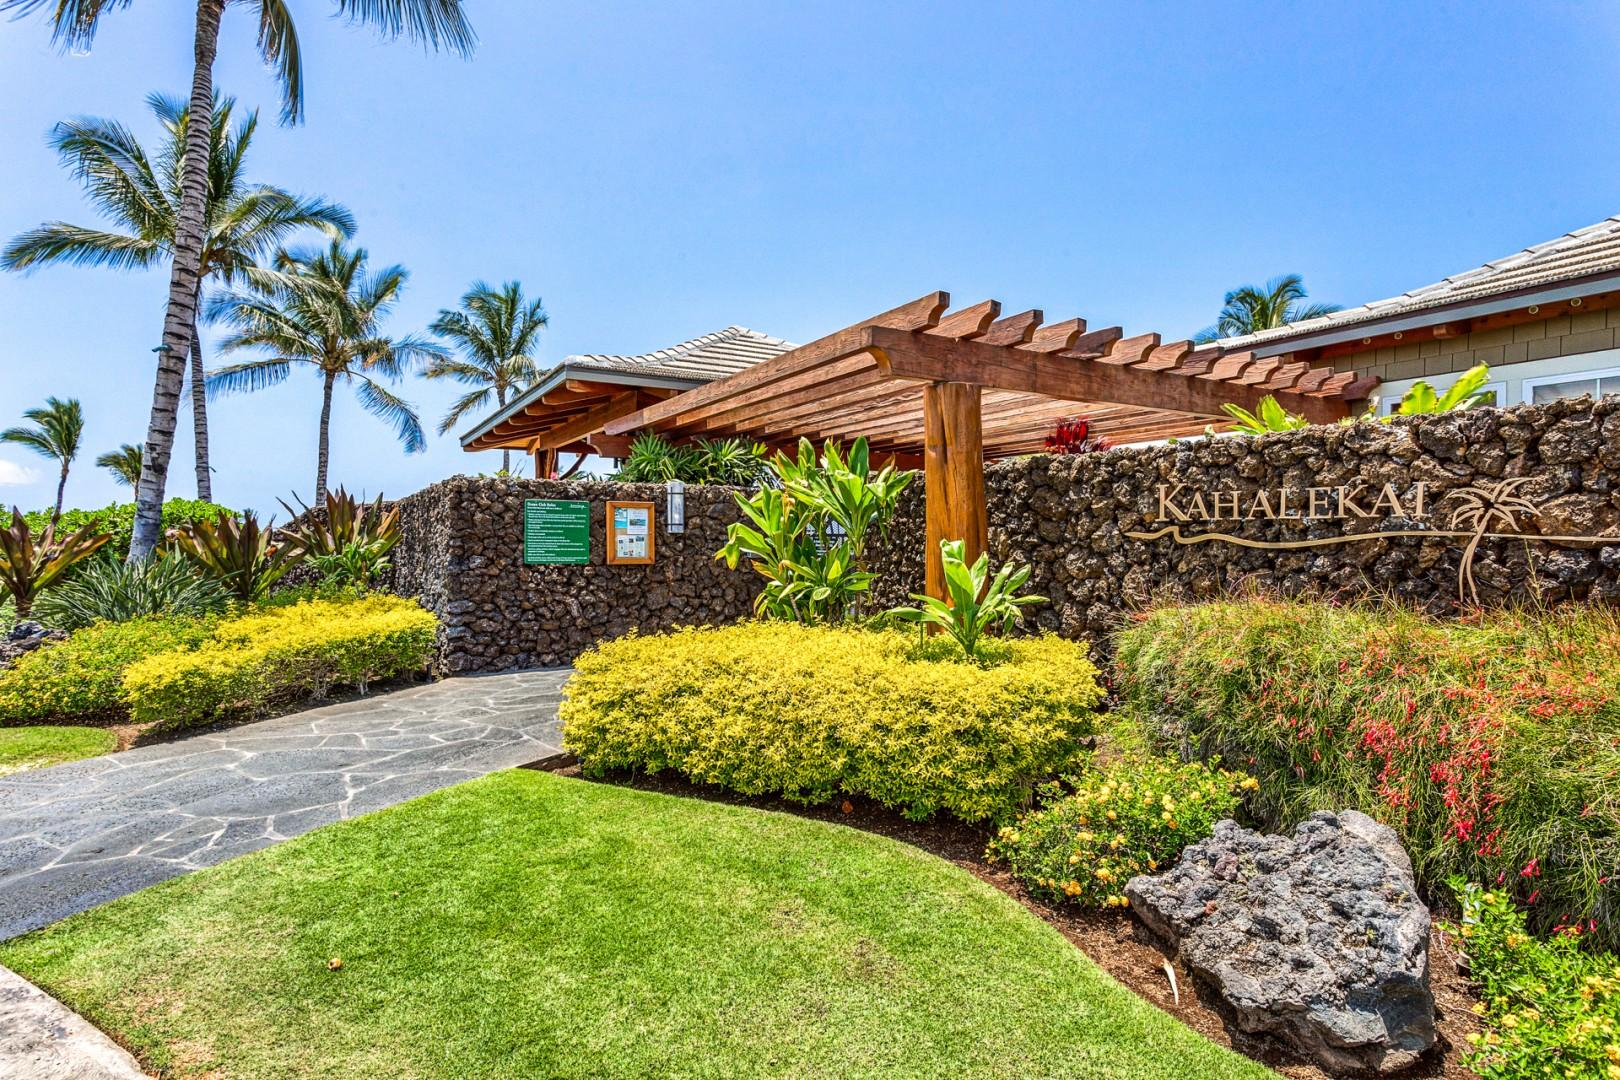 Hali'i Kai's ocean front amenities center entrance, just steps away from the condo.